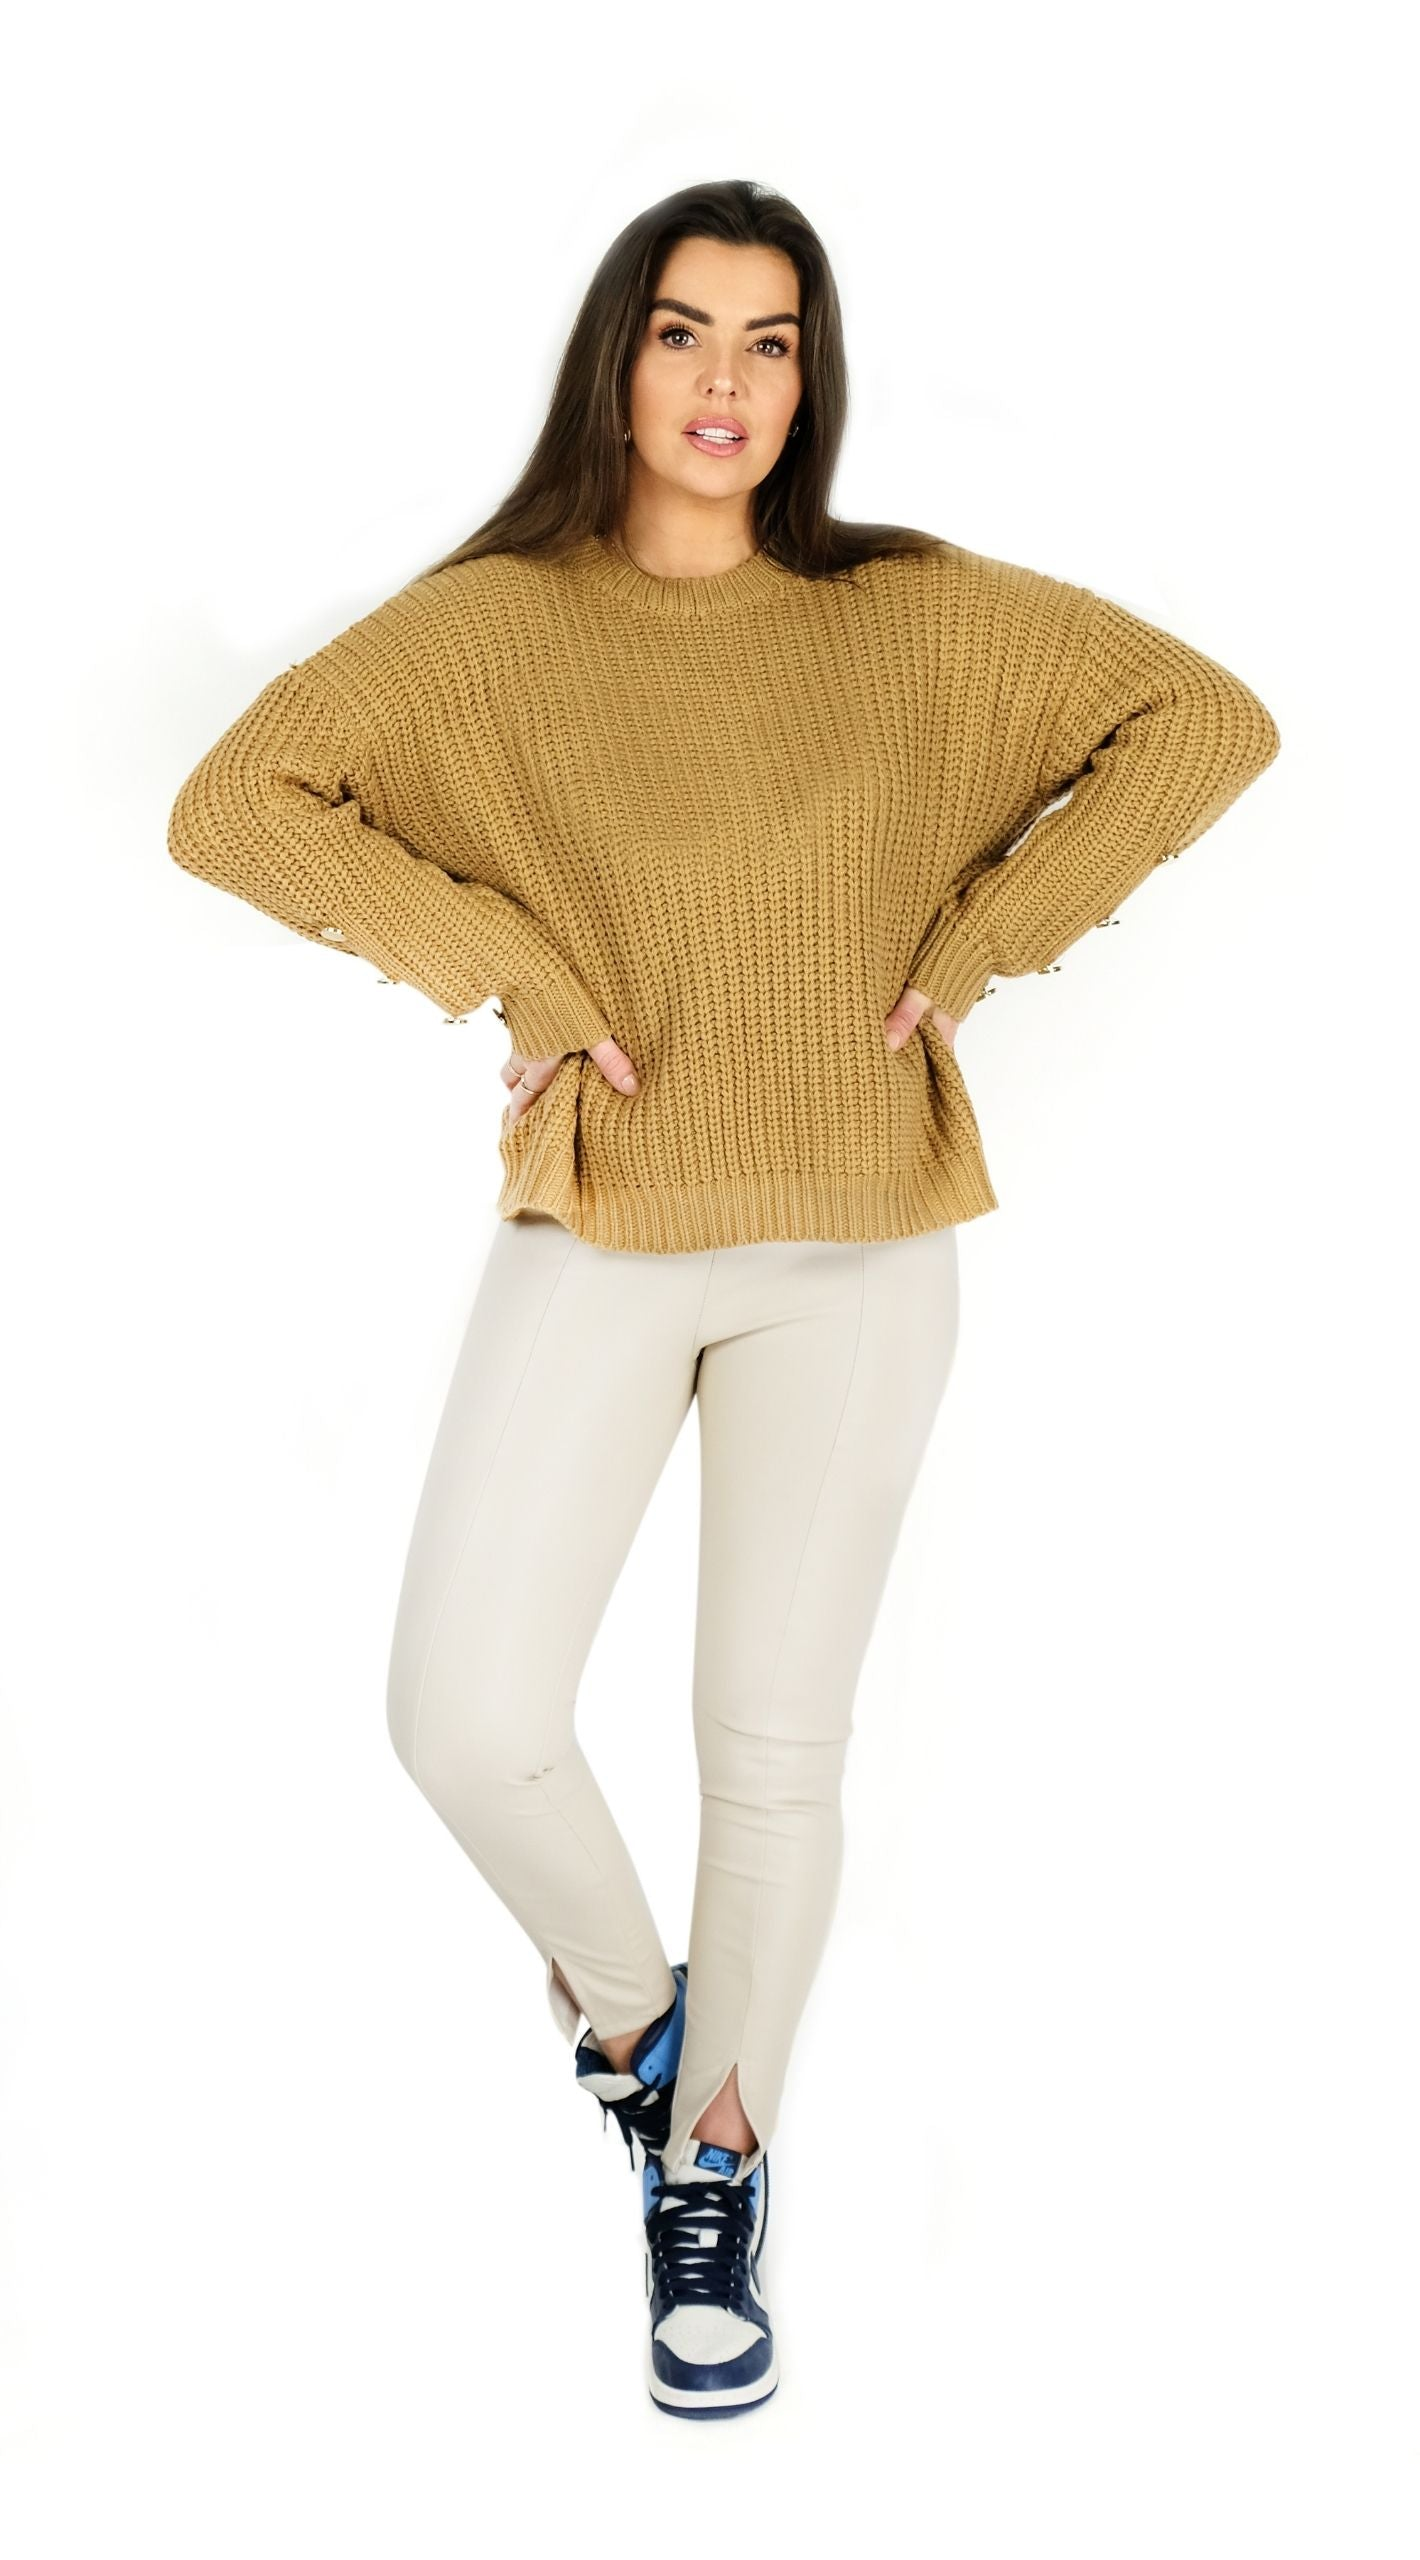 Knitted Sweater - Vicky